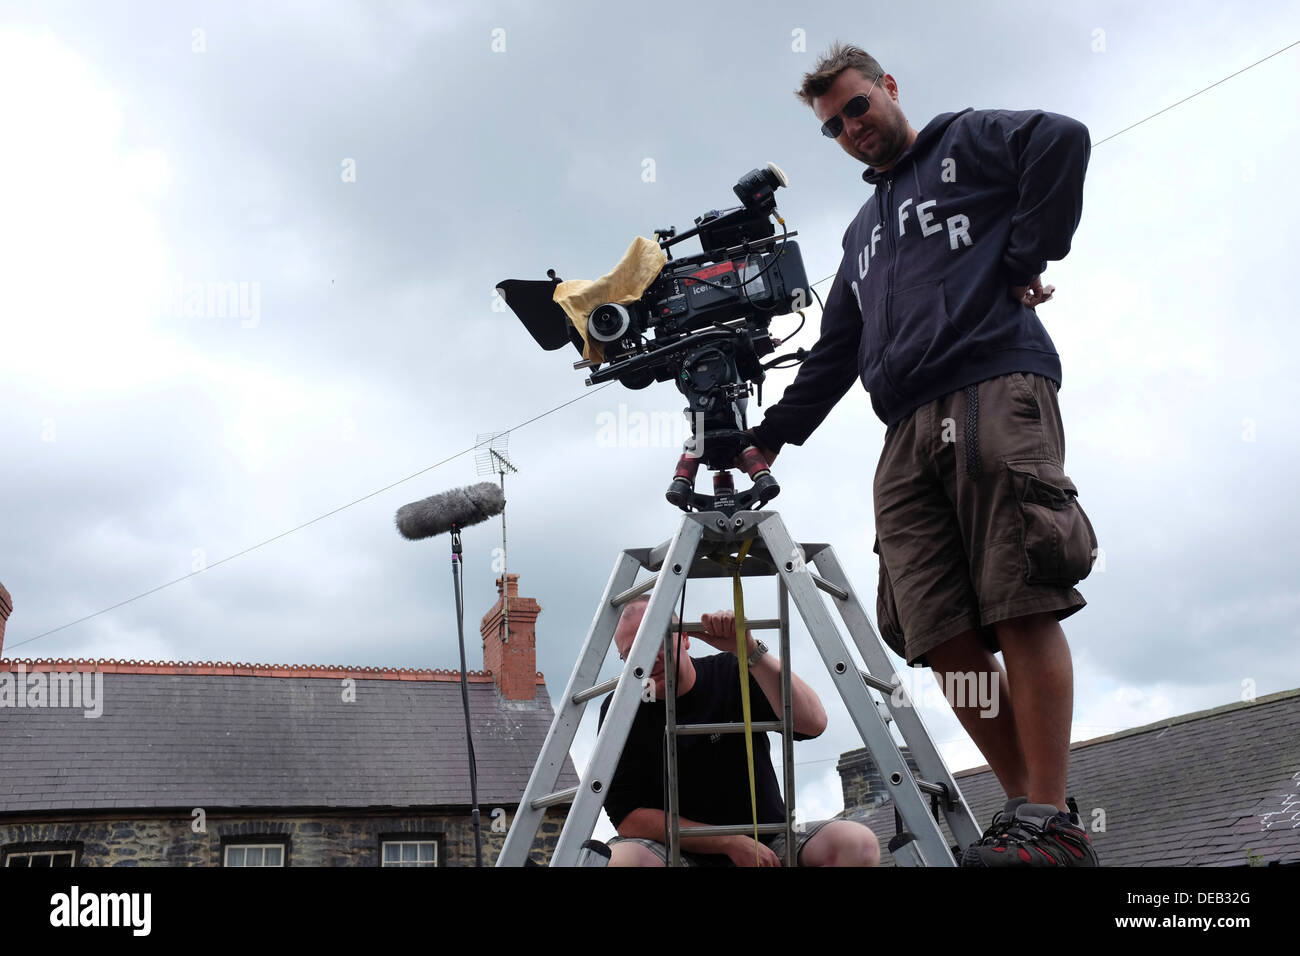 A cameraman standing on a high tripod ladder on a film location, UK - Stock Image